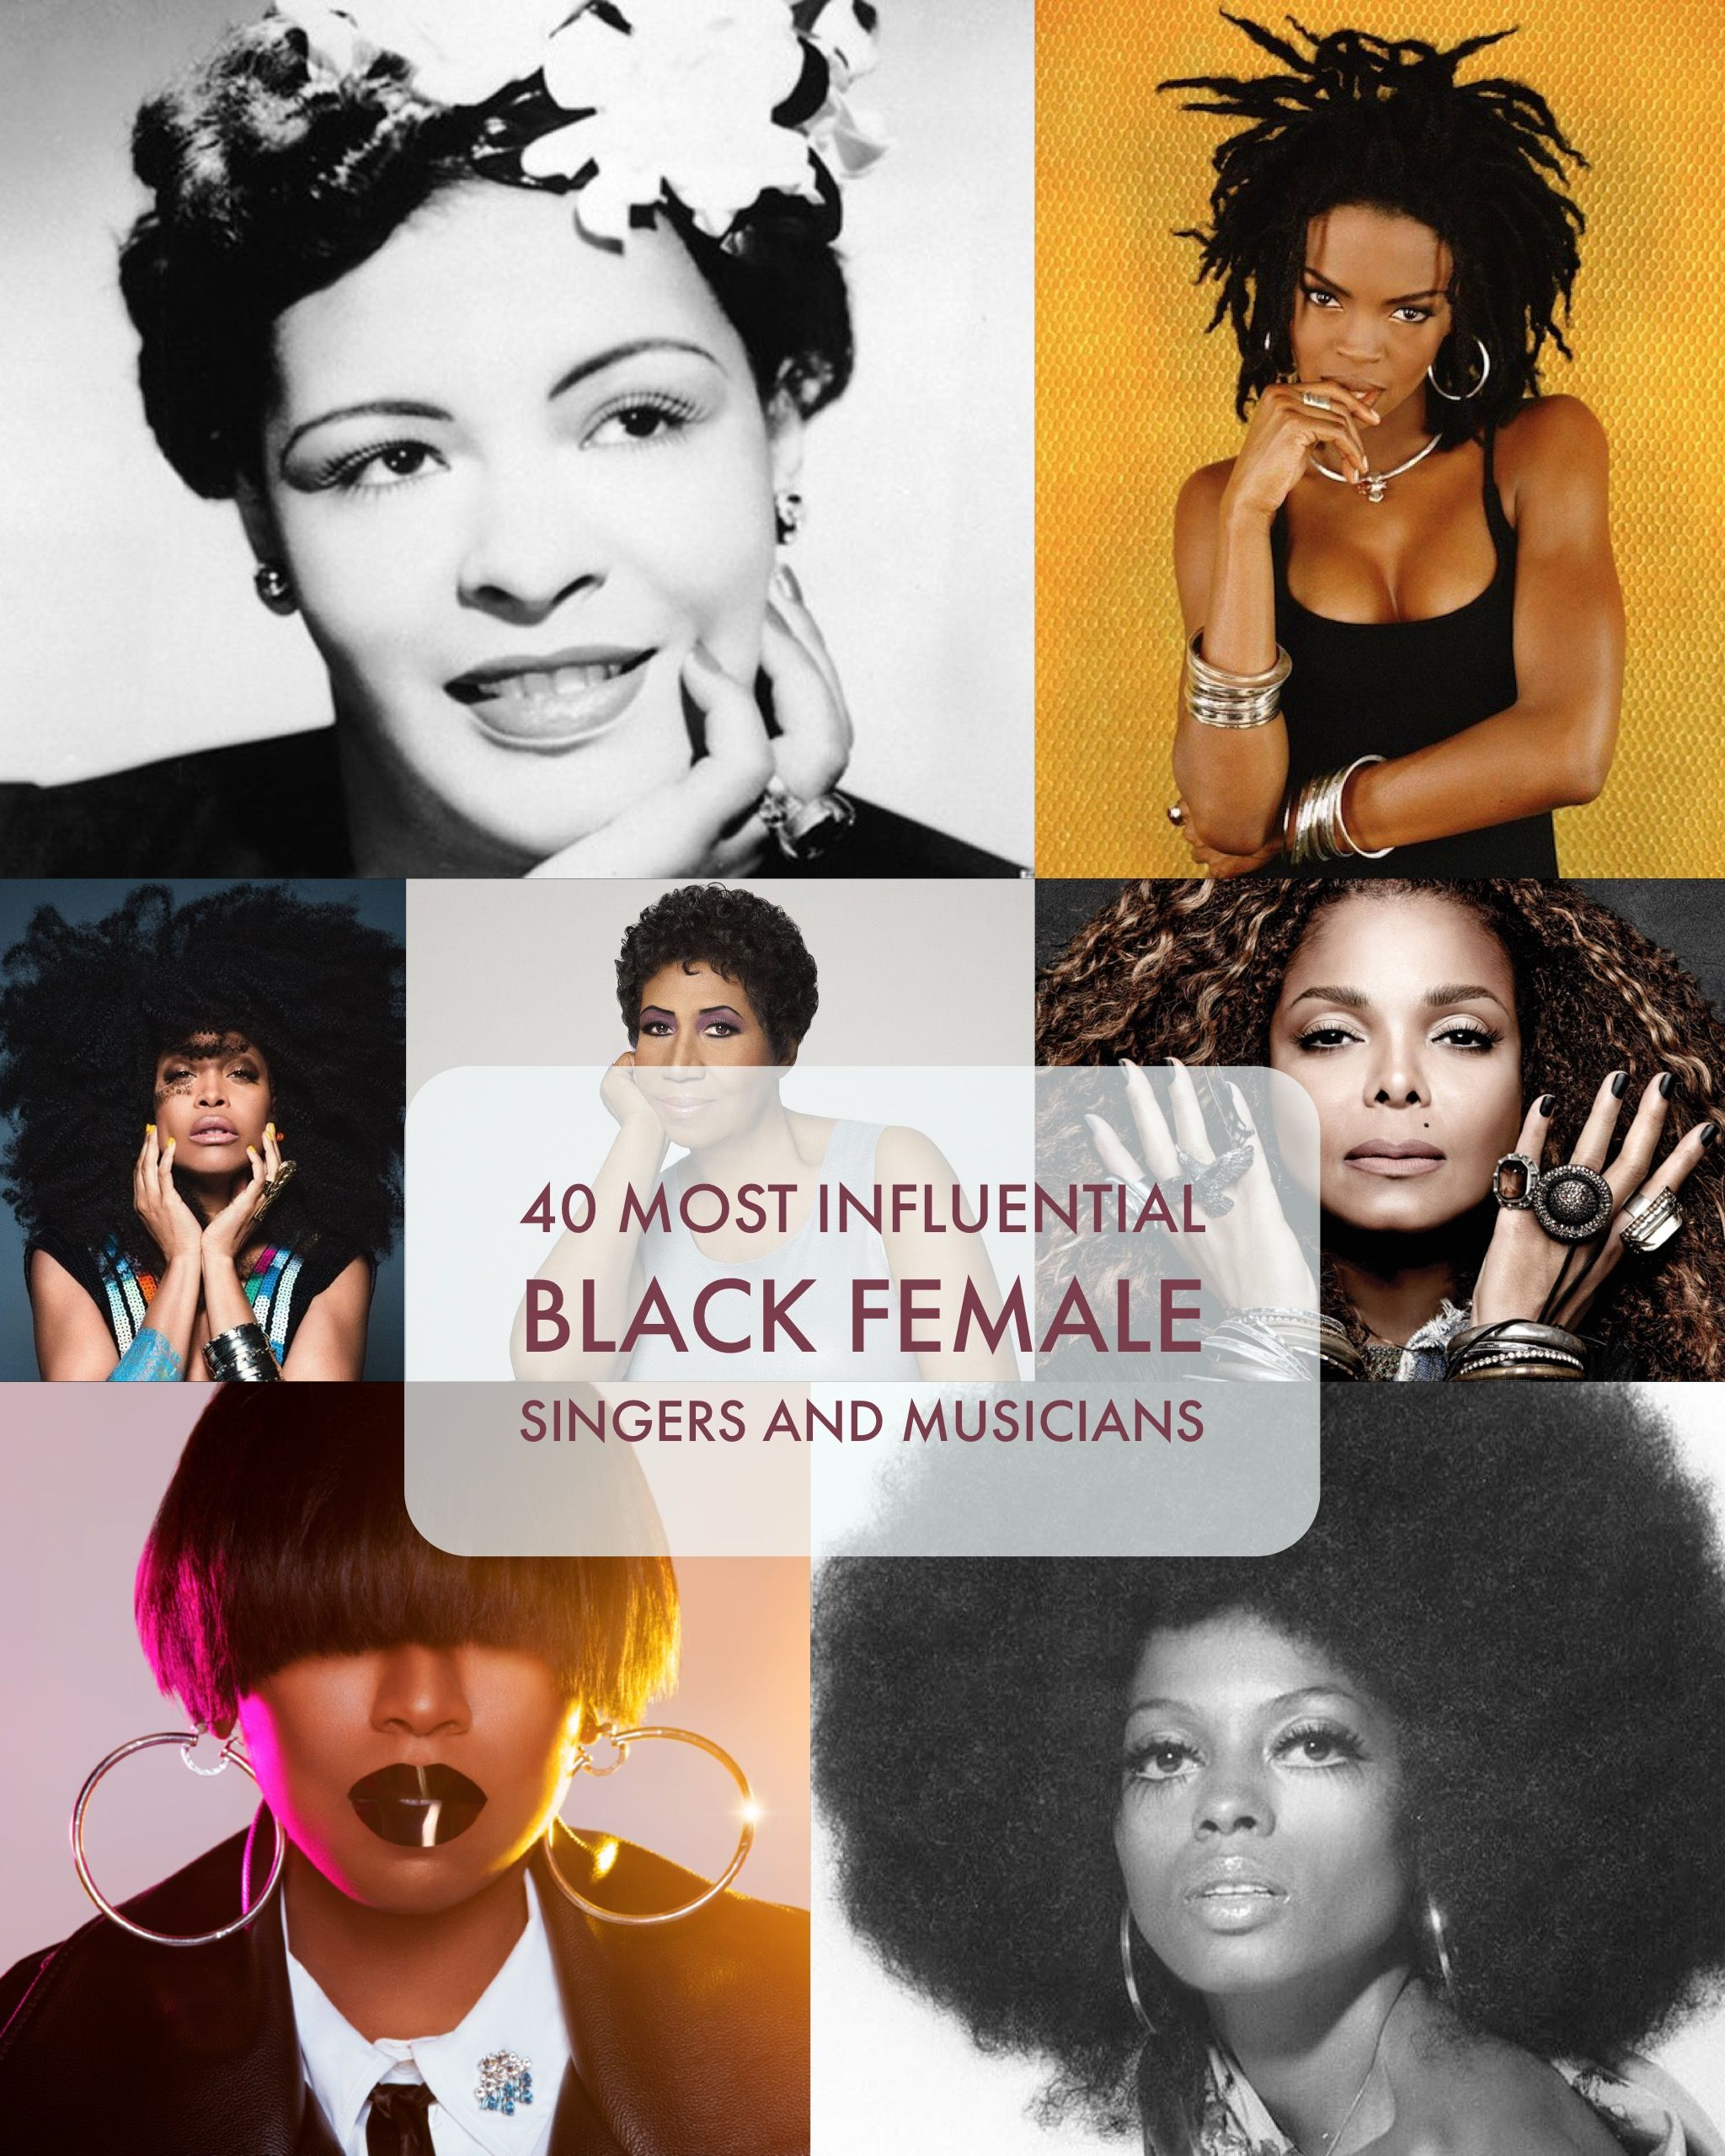 The most influential black female singers and musicians